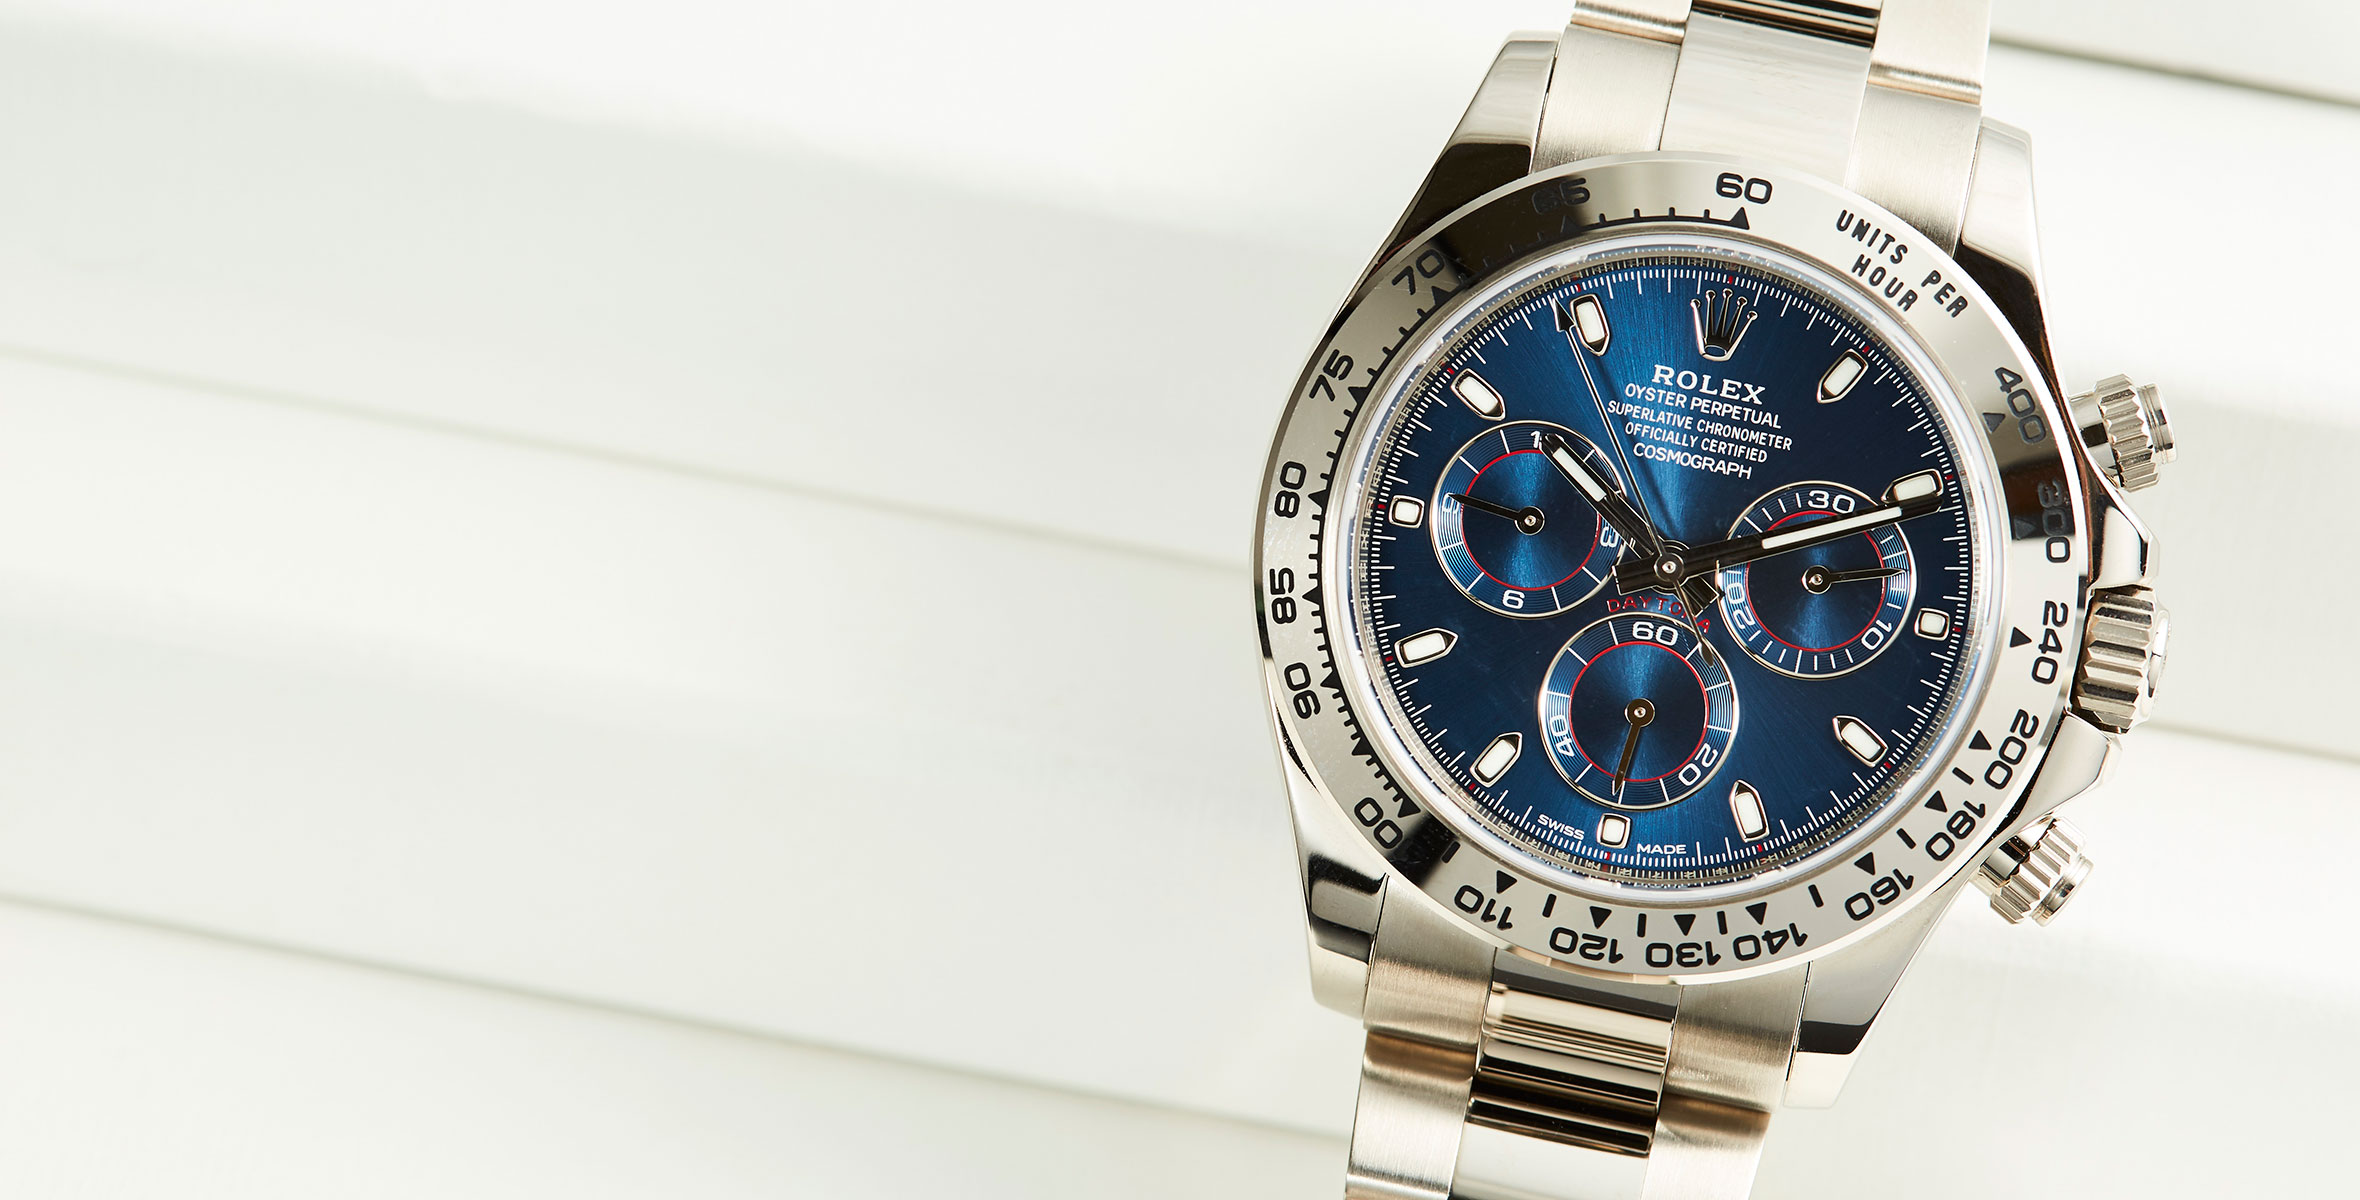 Rolex Daytona In White Gold With Blue Dial Ref 116509